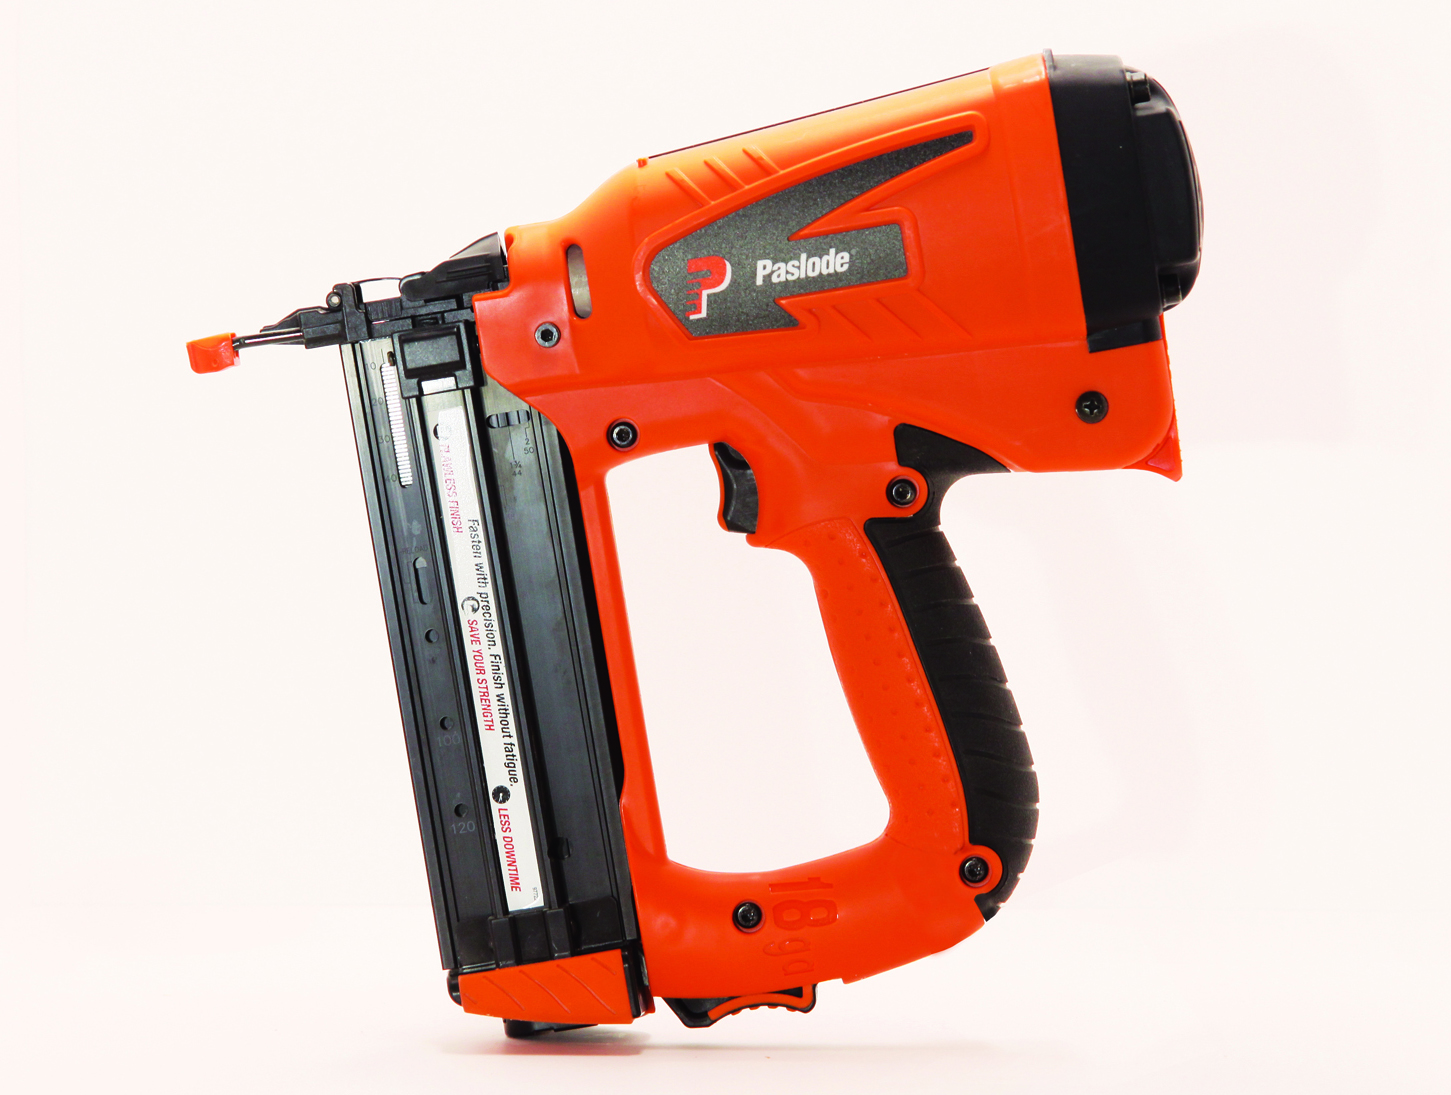 Paslode Im200li Cordless Brad Nailer Tools Of The Trade